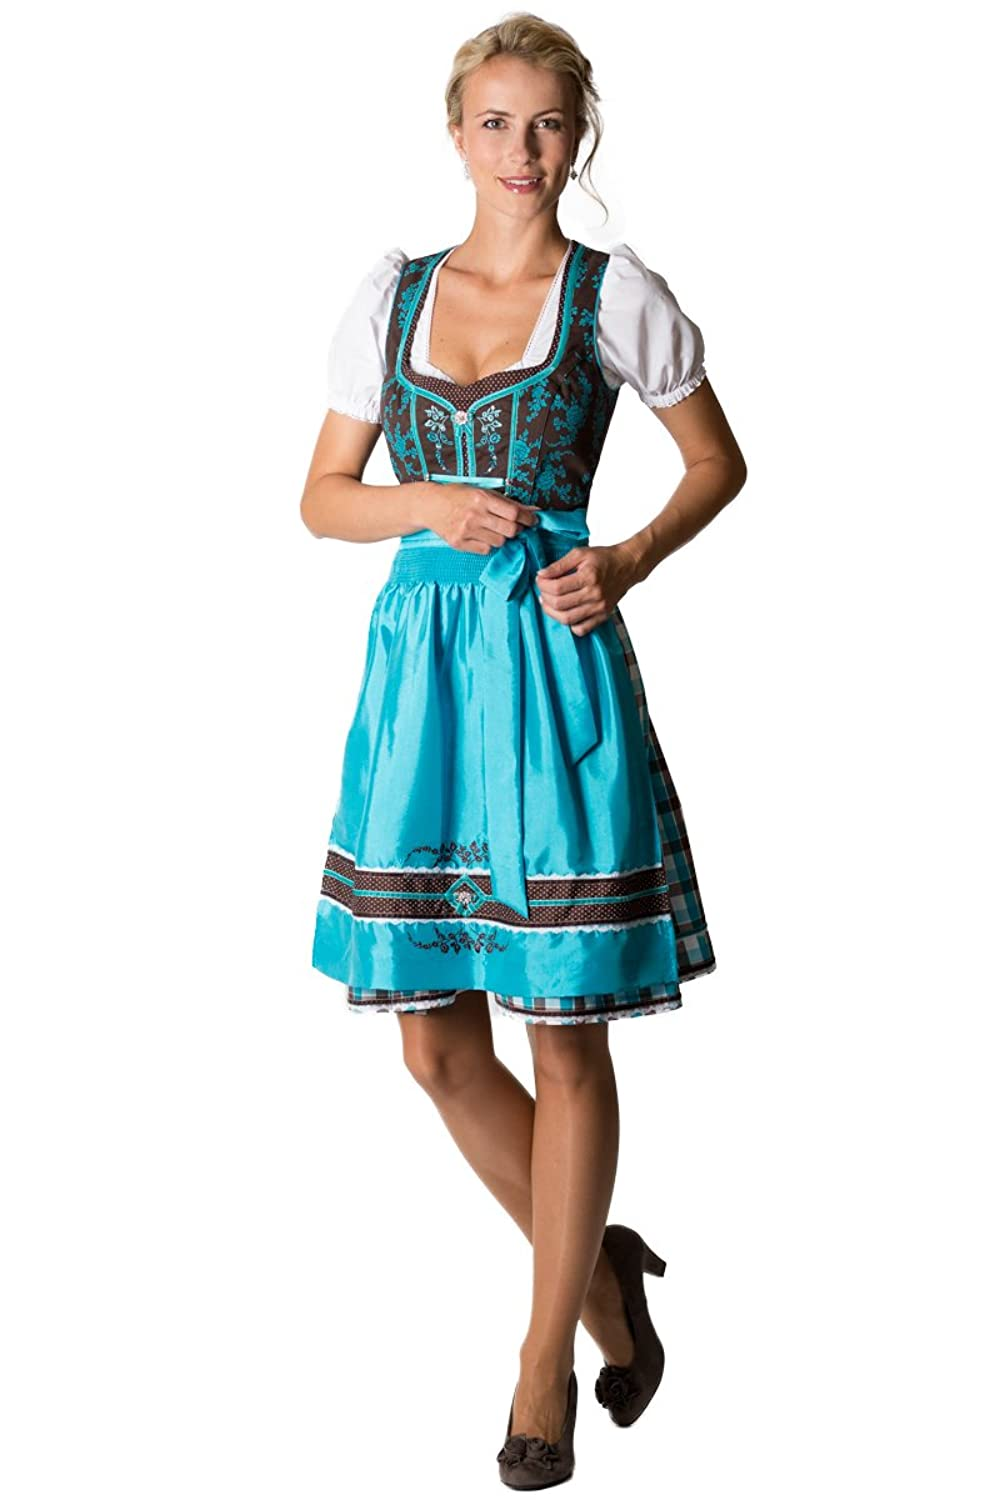 spieth wensky damen mini dirndl adria braun blau d010181. Black Bedroom Furniture Sets. Home Design Ideas